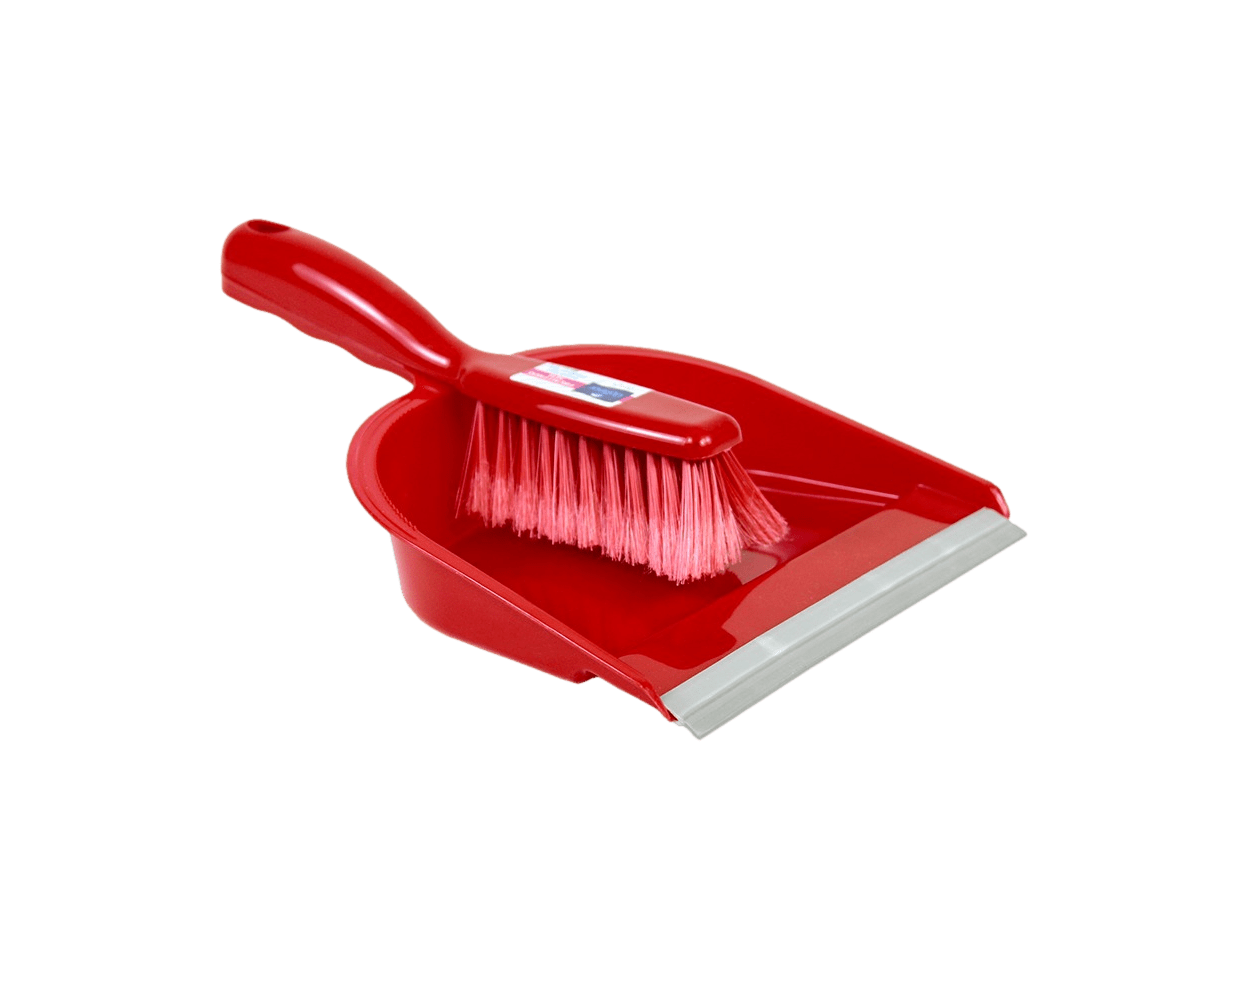 brush and dustpan red